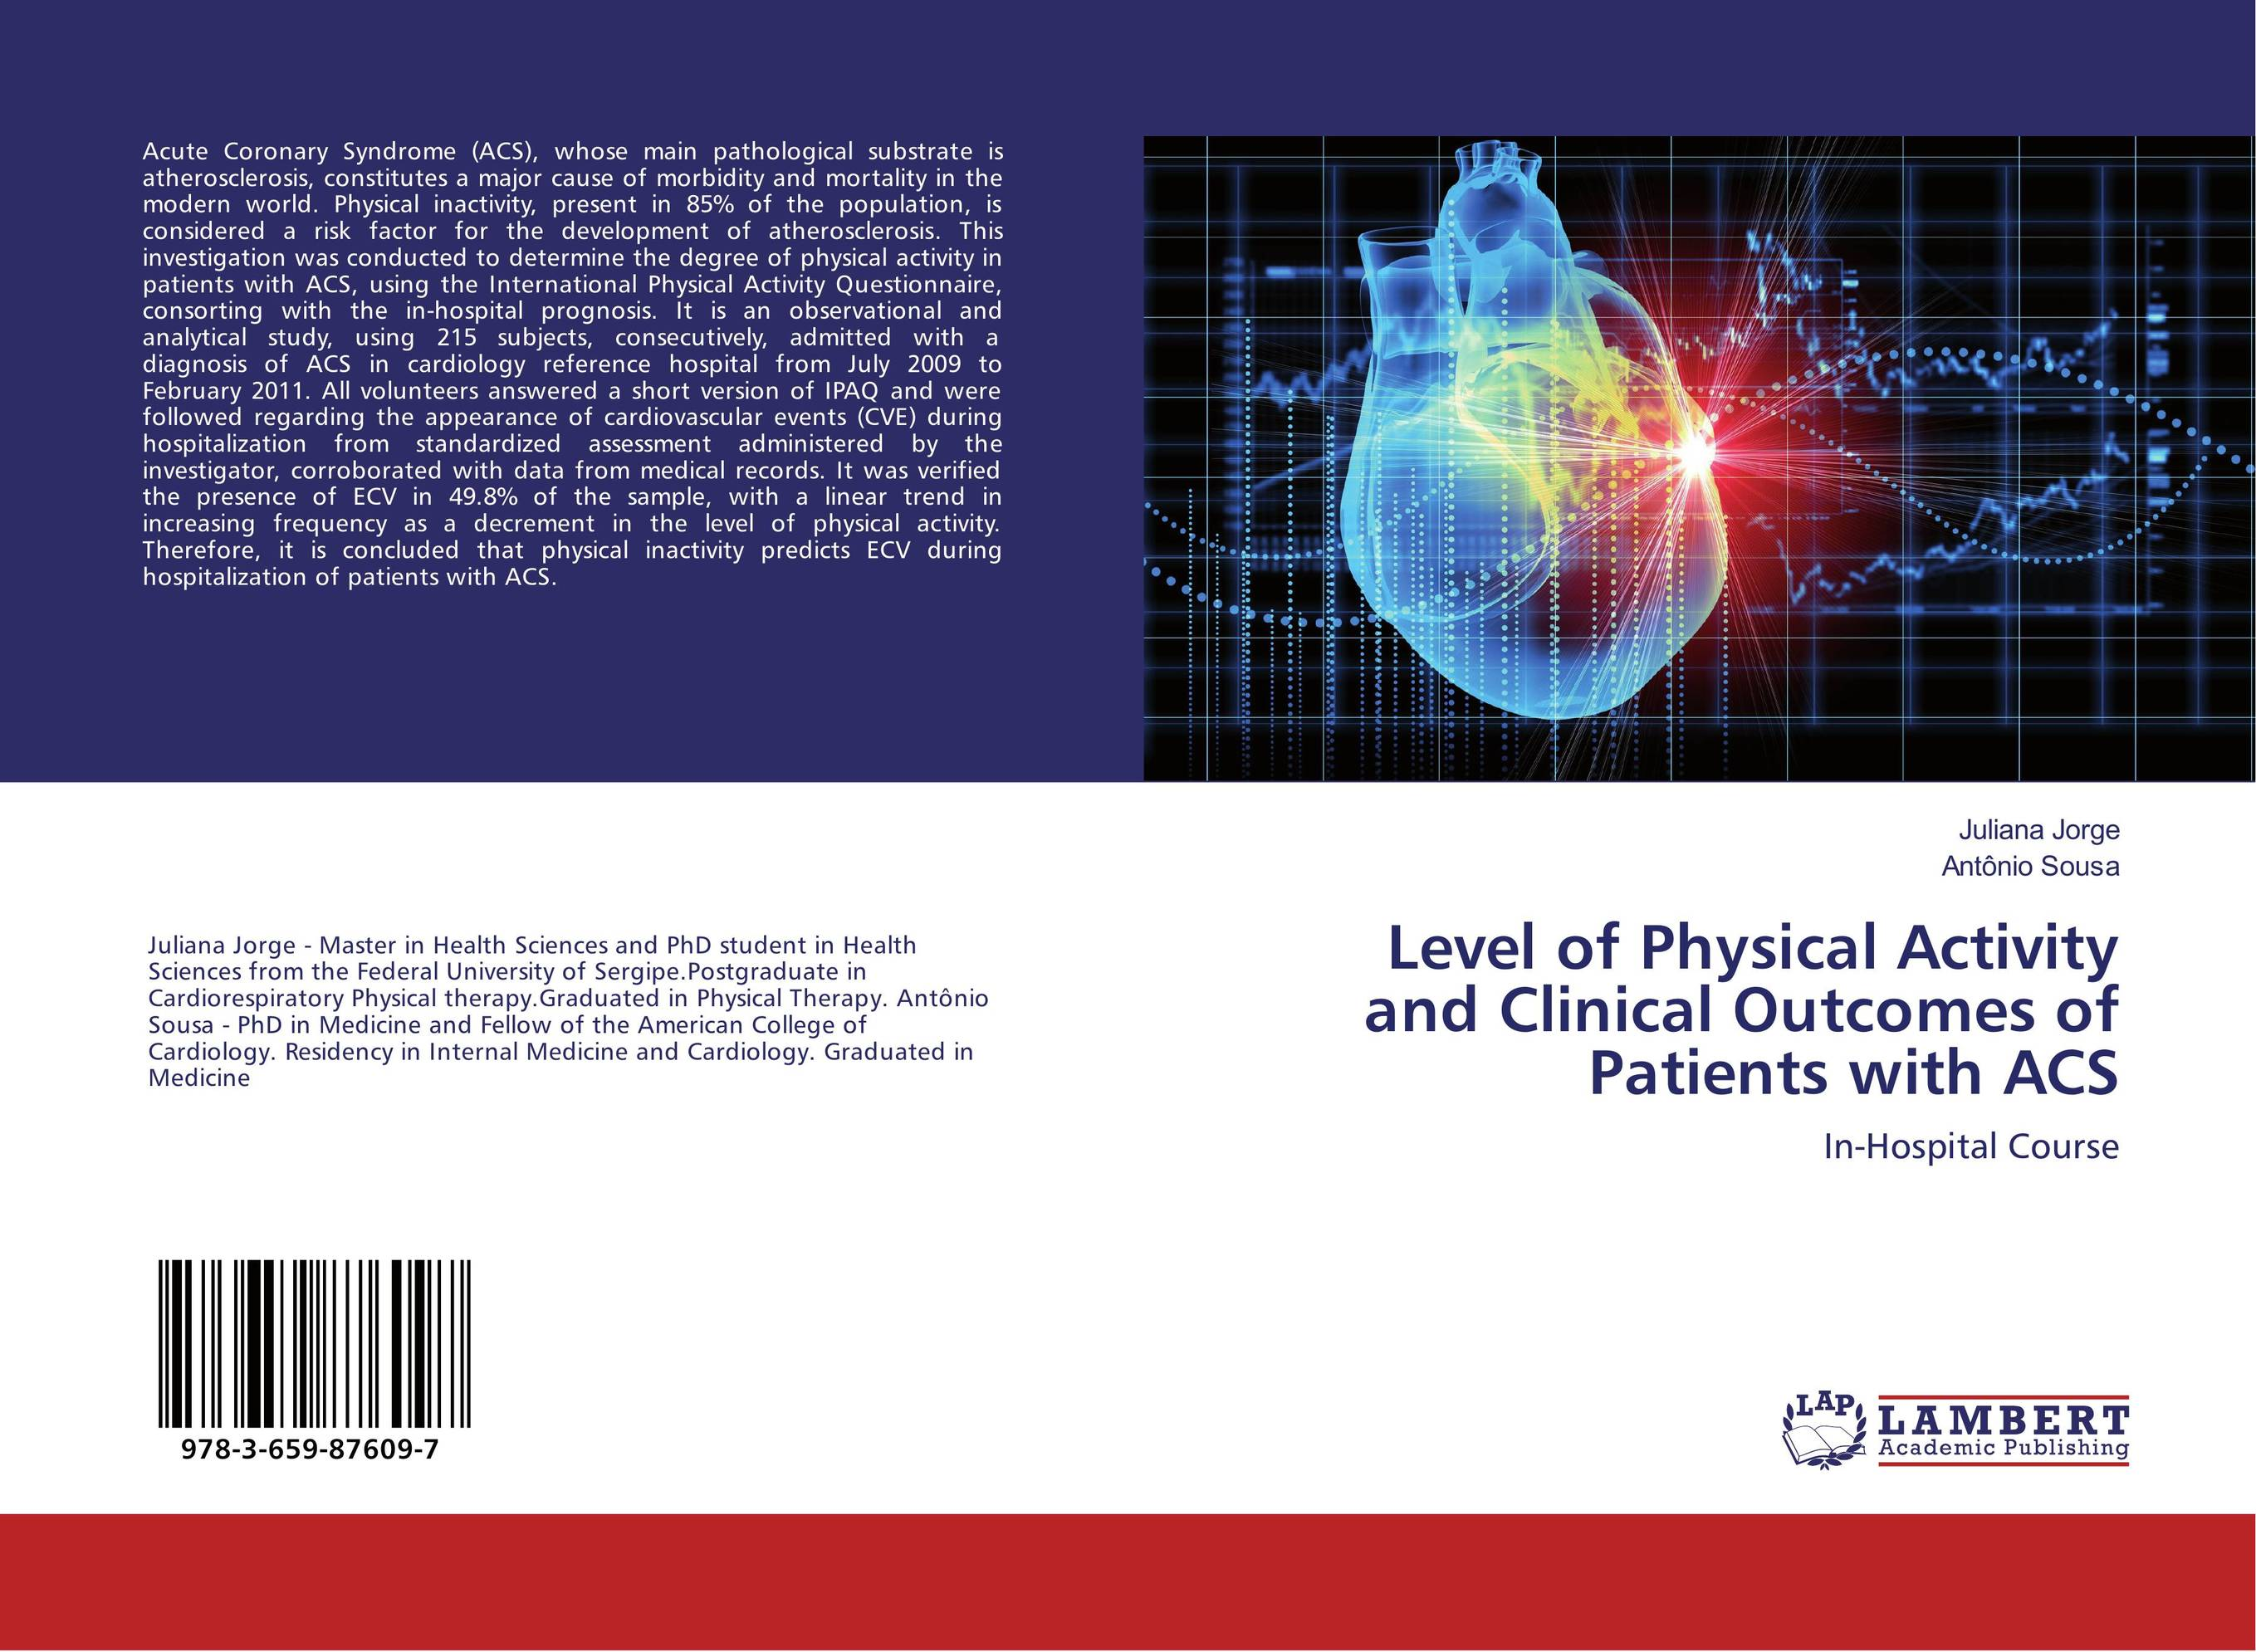 Level of Physical Activity and Clinical Outcomes of Patients with ACS psychiatric and physical morbidity in an urban geriatric population